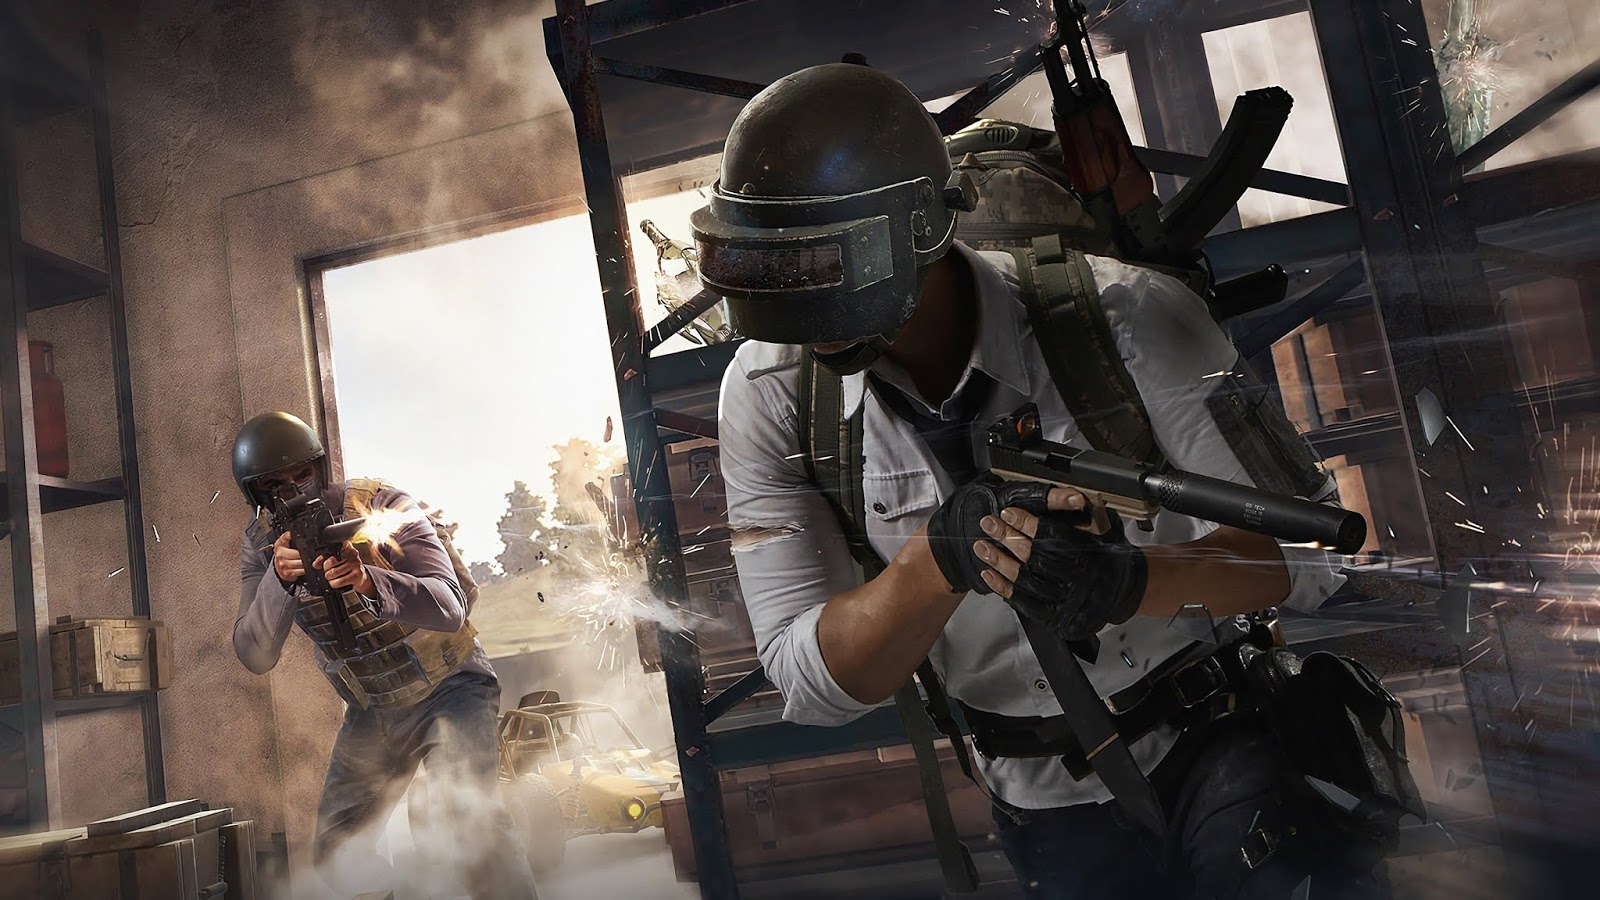 Pubg 4k Ultra Hd Wallpapers For Pc And Mobile The99tricks